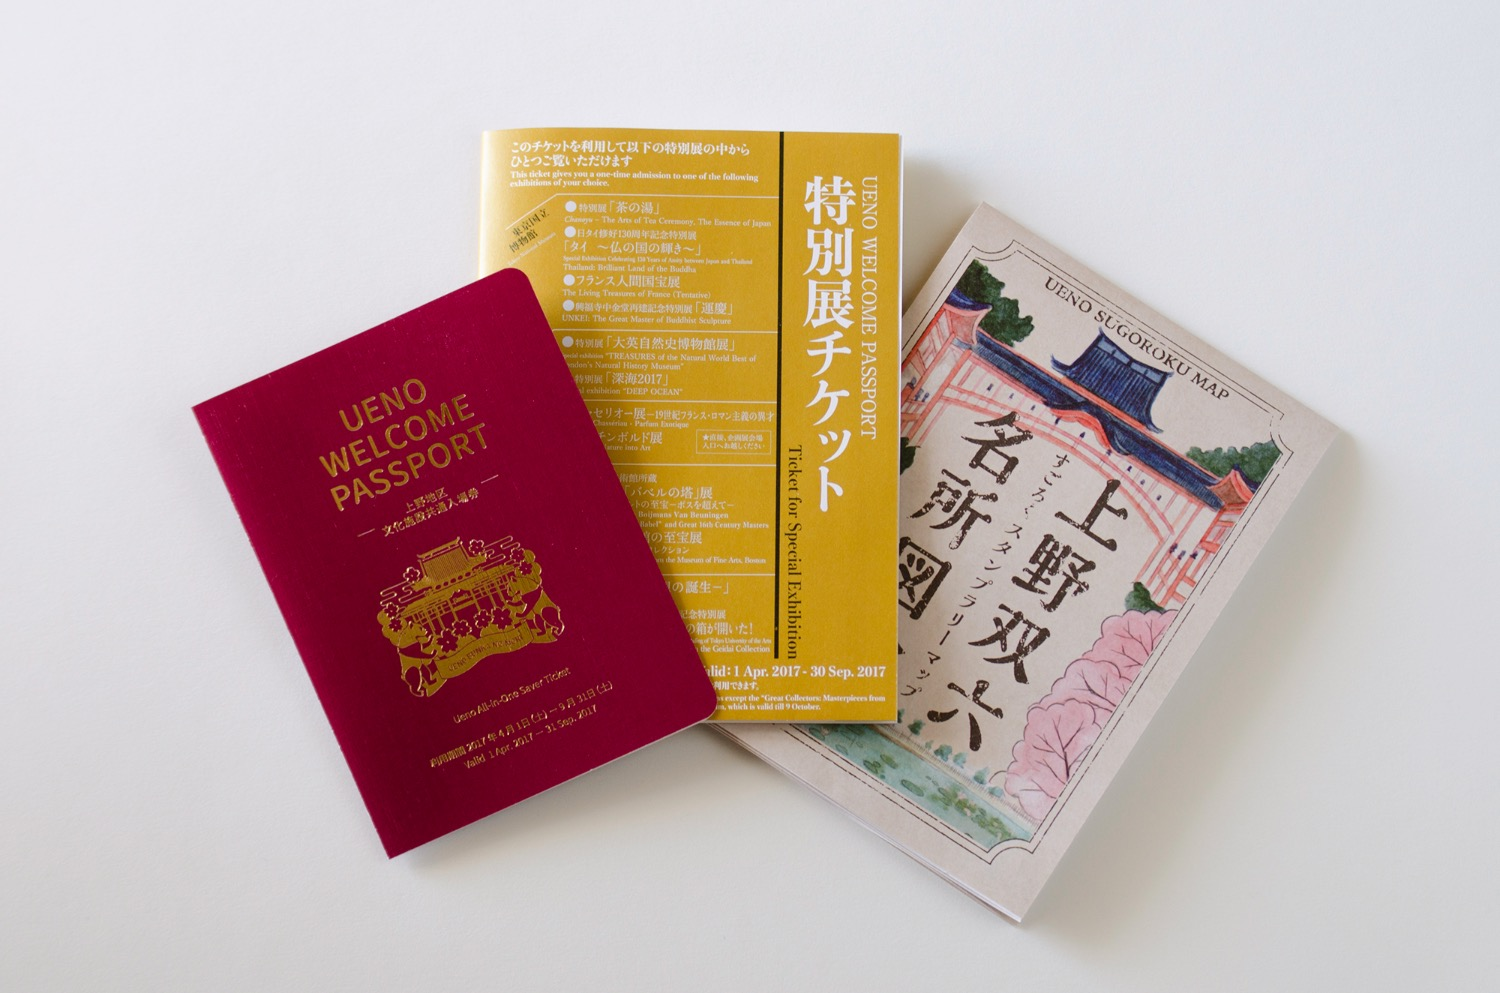 UENO WELCOME PASSPORT 2017 04-09